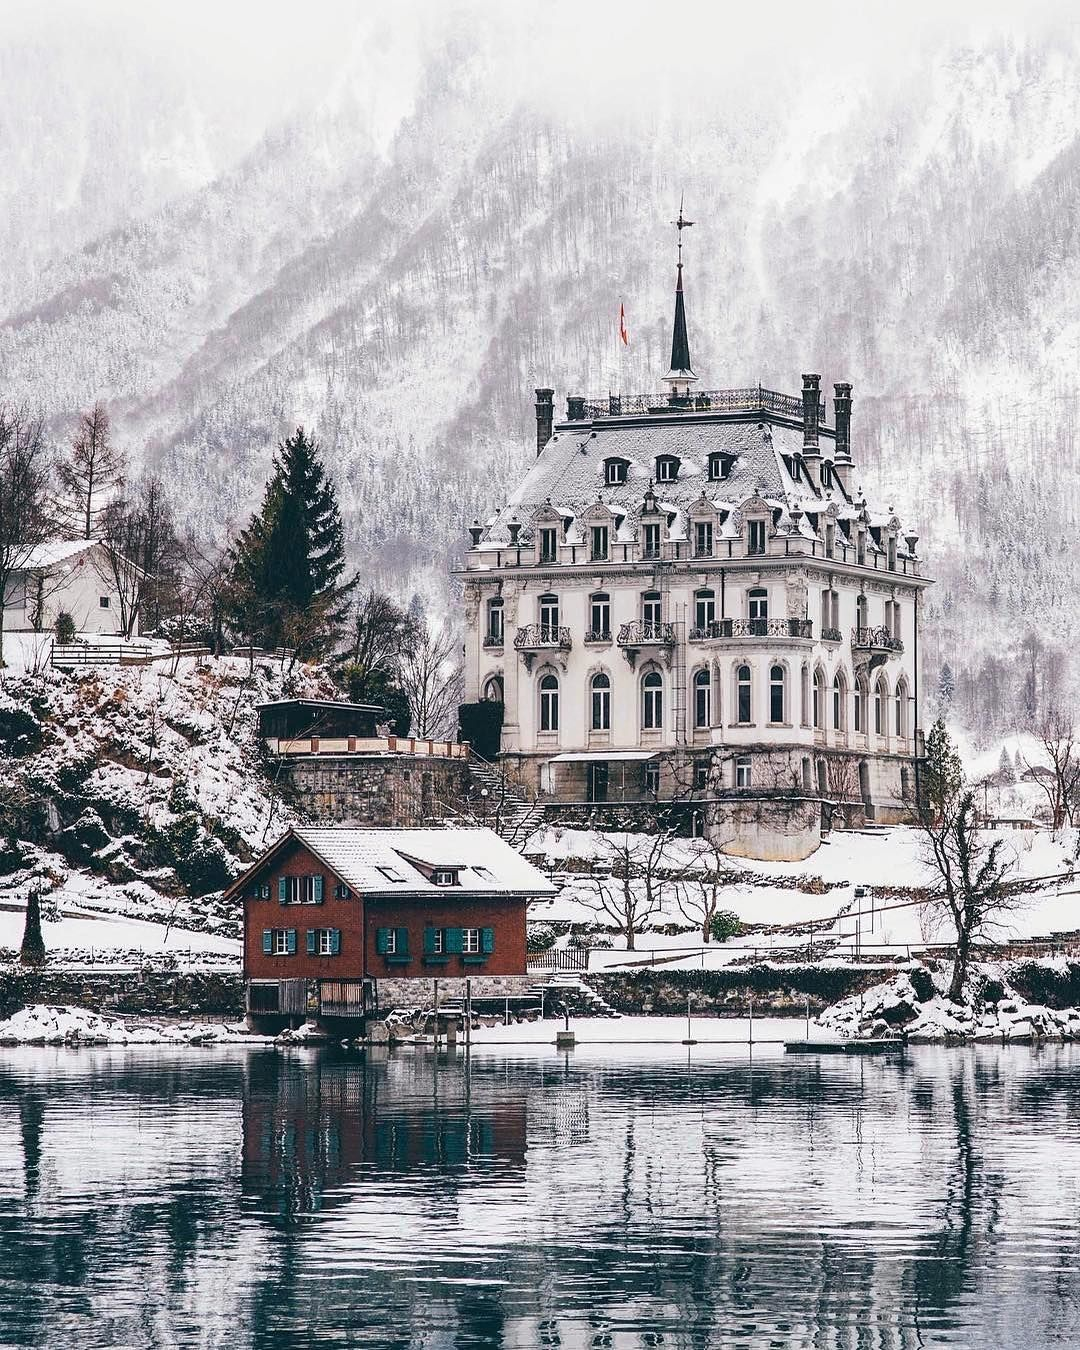 Iseltwald (berne) In The Winter - Travel